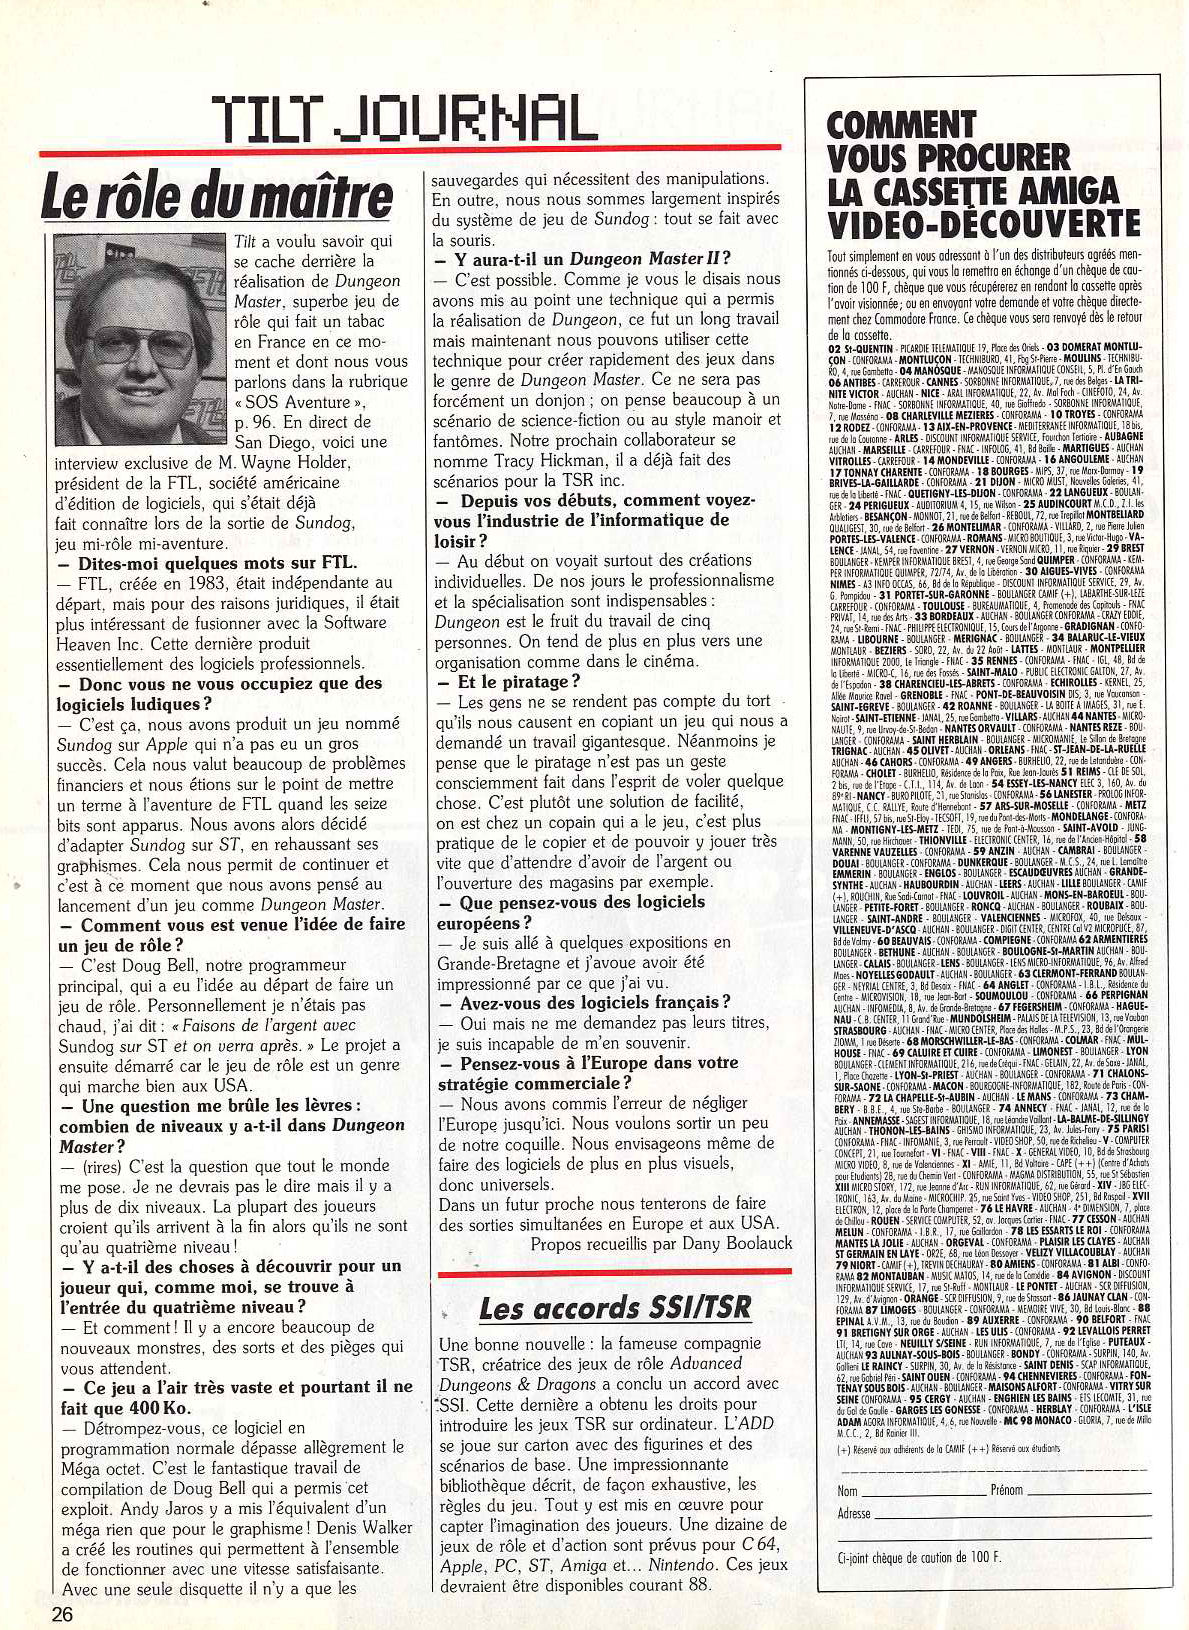 Interview of Wayne Holder (with a photo) published in French TILT Magazine 52 (March 1988) on page 26